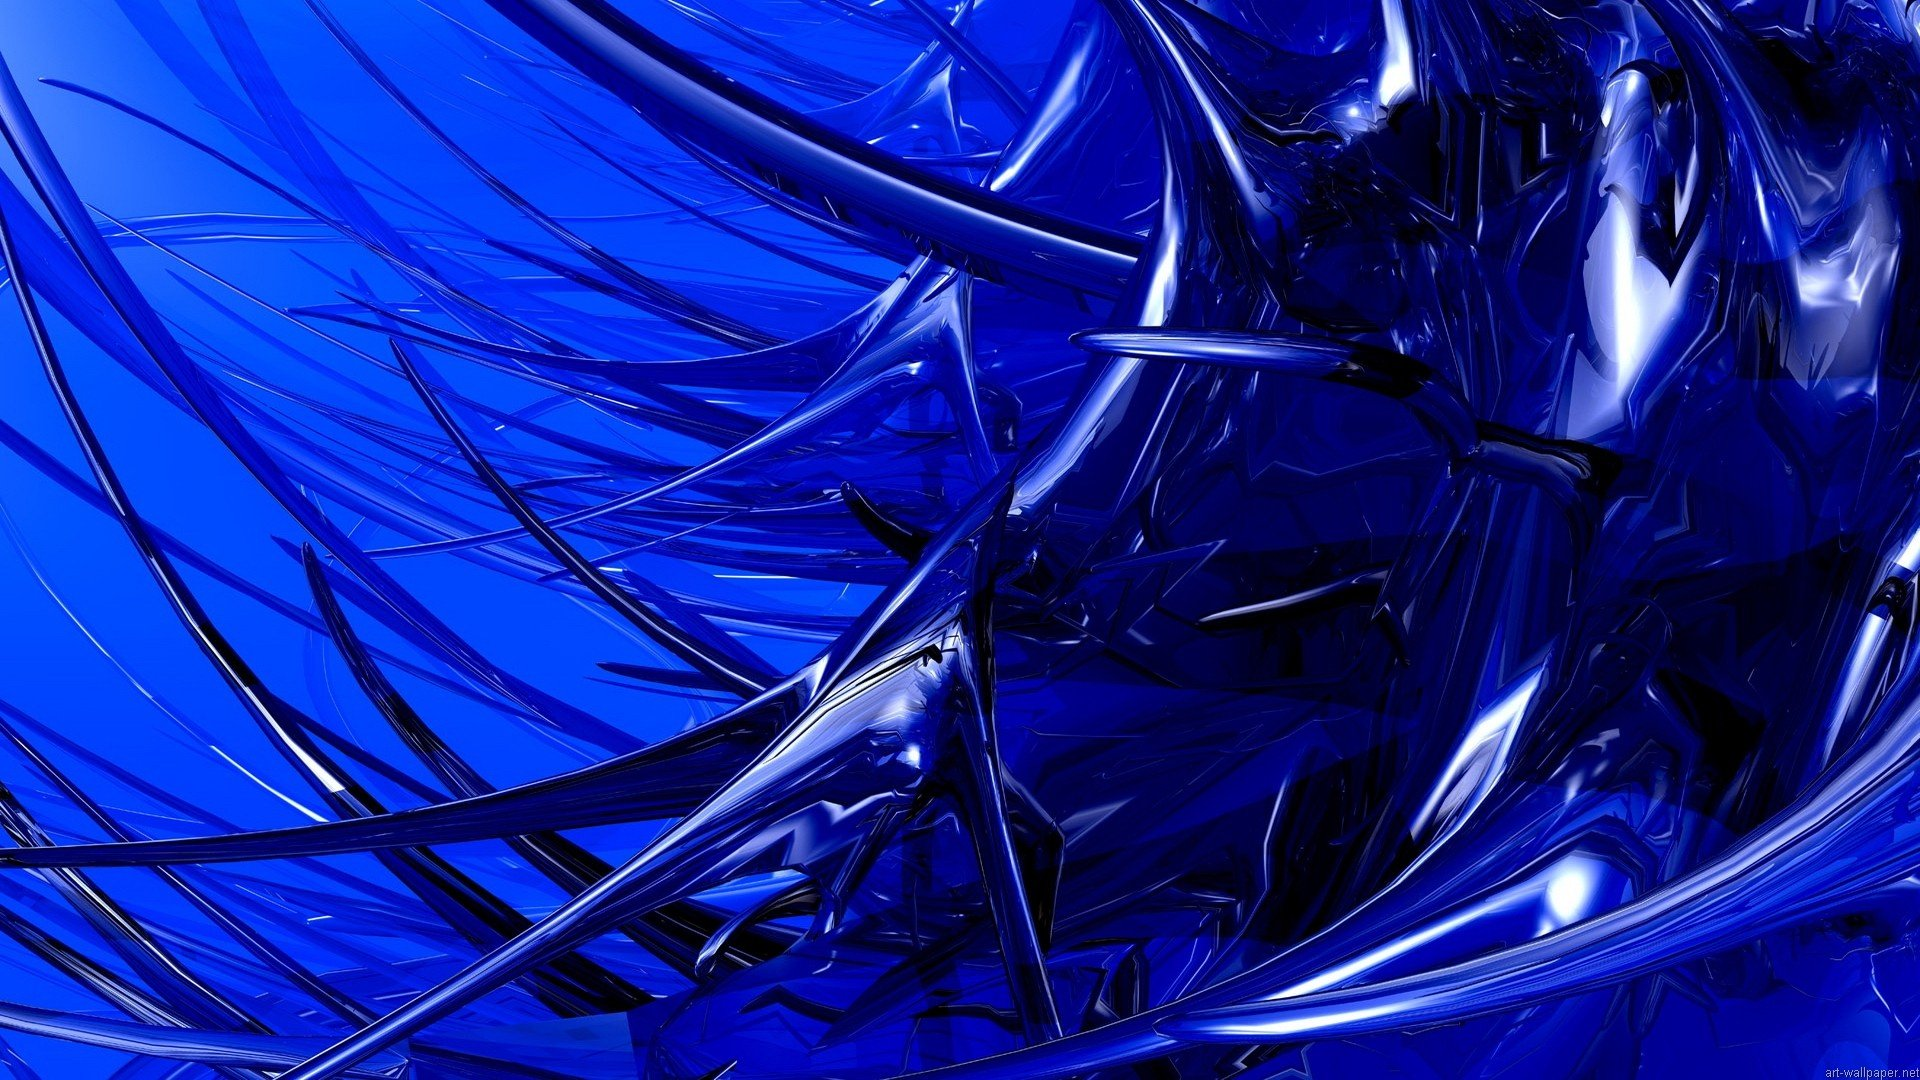 Blue Hd Wallpapers 1080p Wallpapersafari